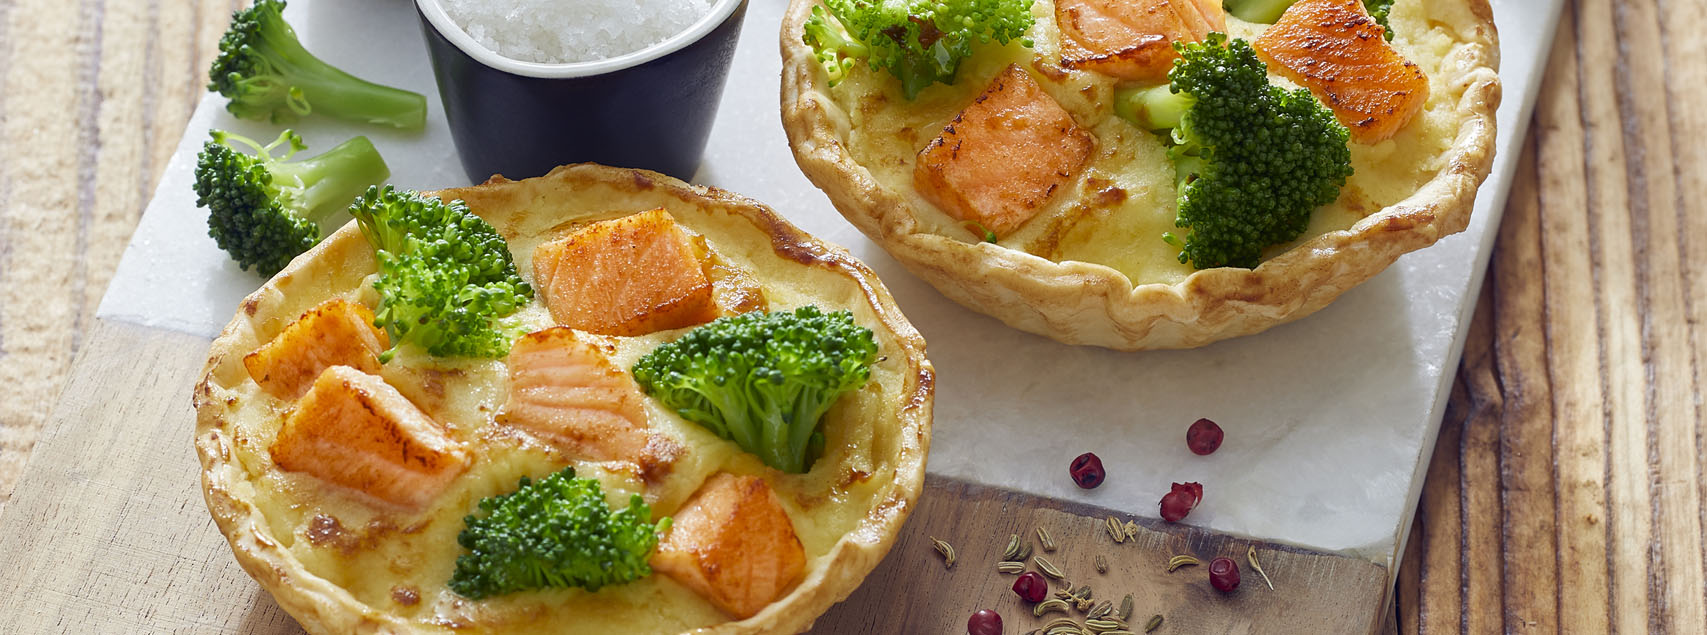 Lachs-Broccoli Quiche